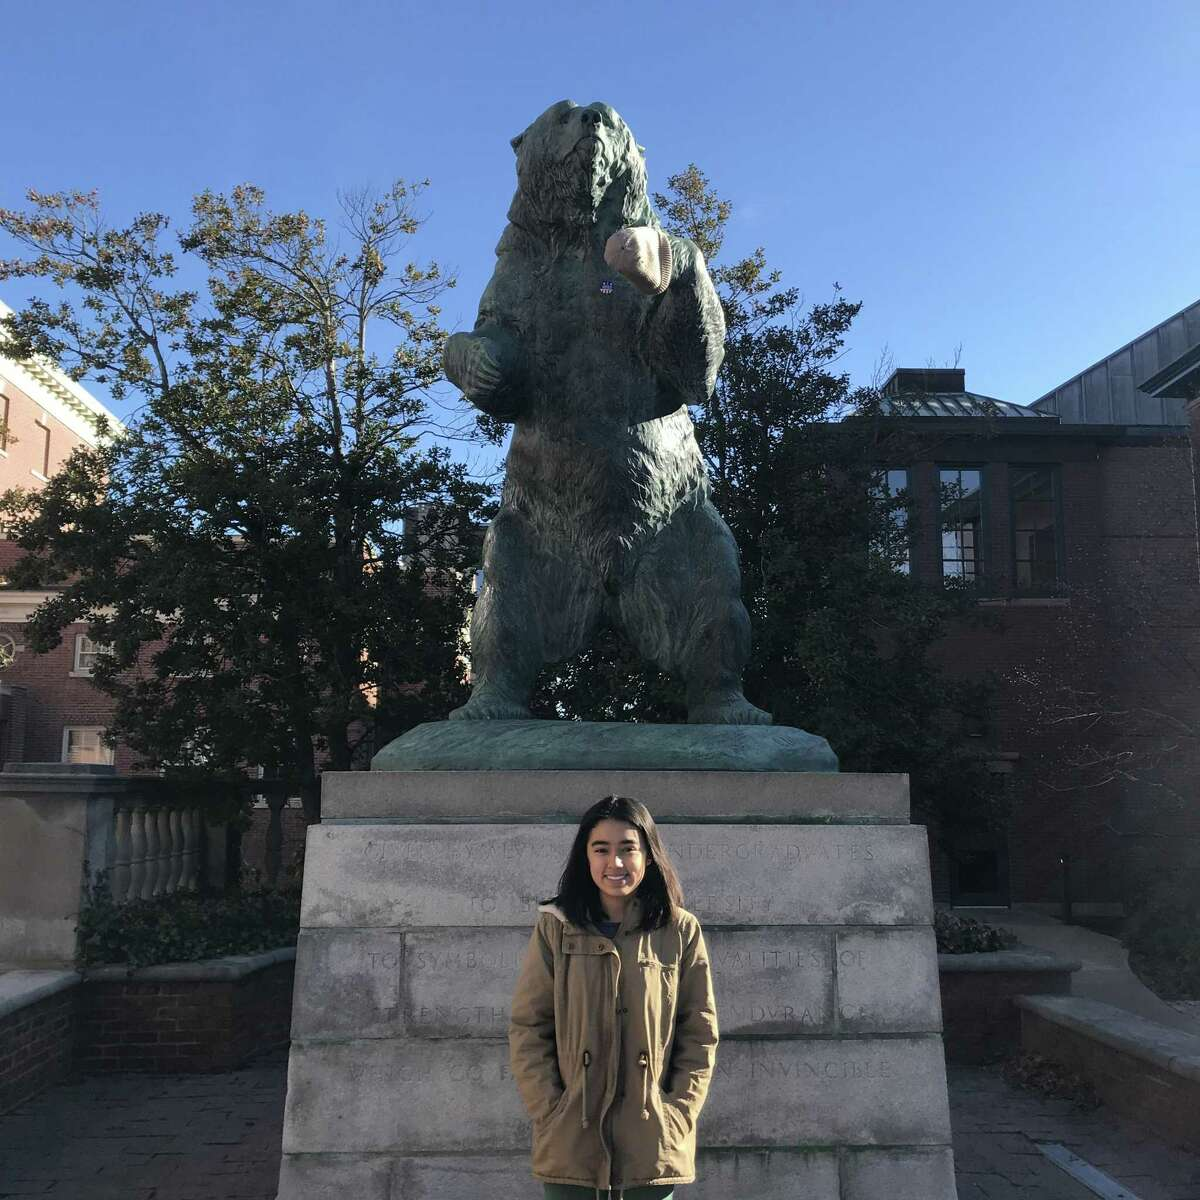 Teresa Conchas, who graduated earlier this year from Young Women's Leadership Academy as valedictorian, stands in front of a bronze statue of Bruno the bear on the main green at Brown University in Rhode Island.